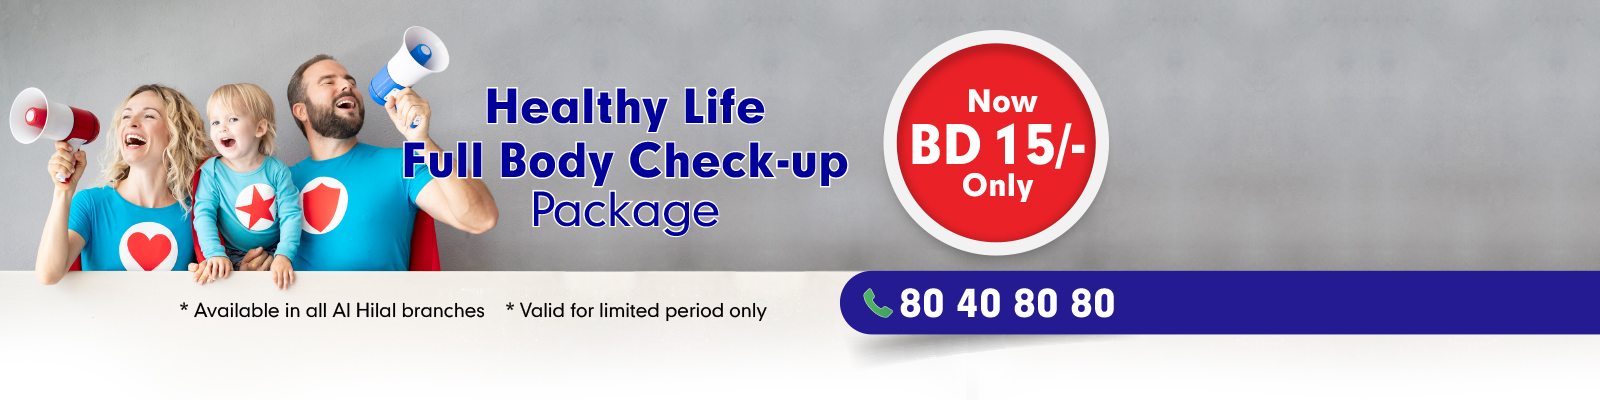 ALH-Website-Banner-Healthy-Life-Full-Body-Check-Up